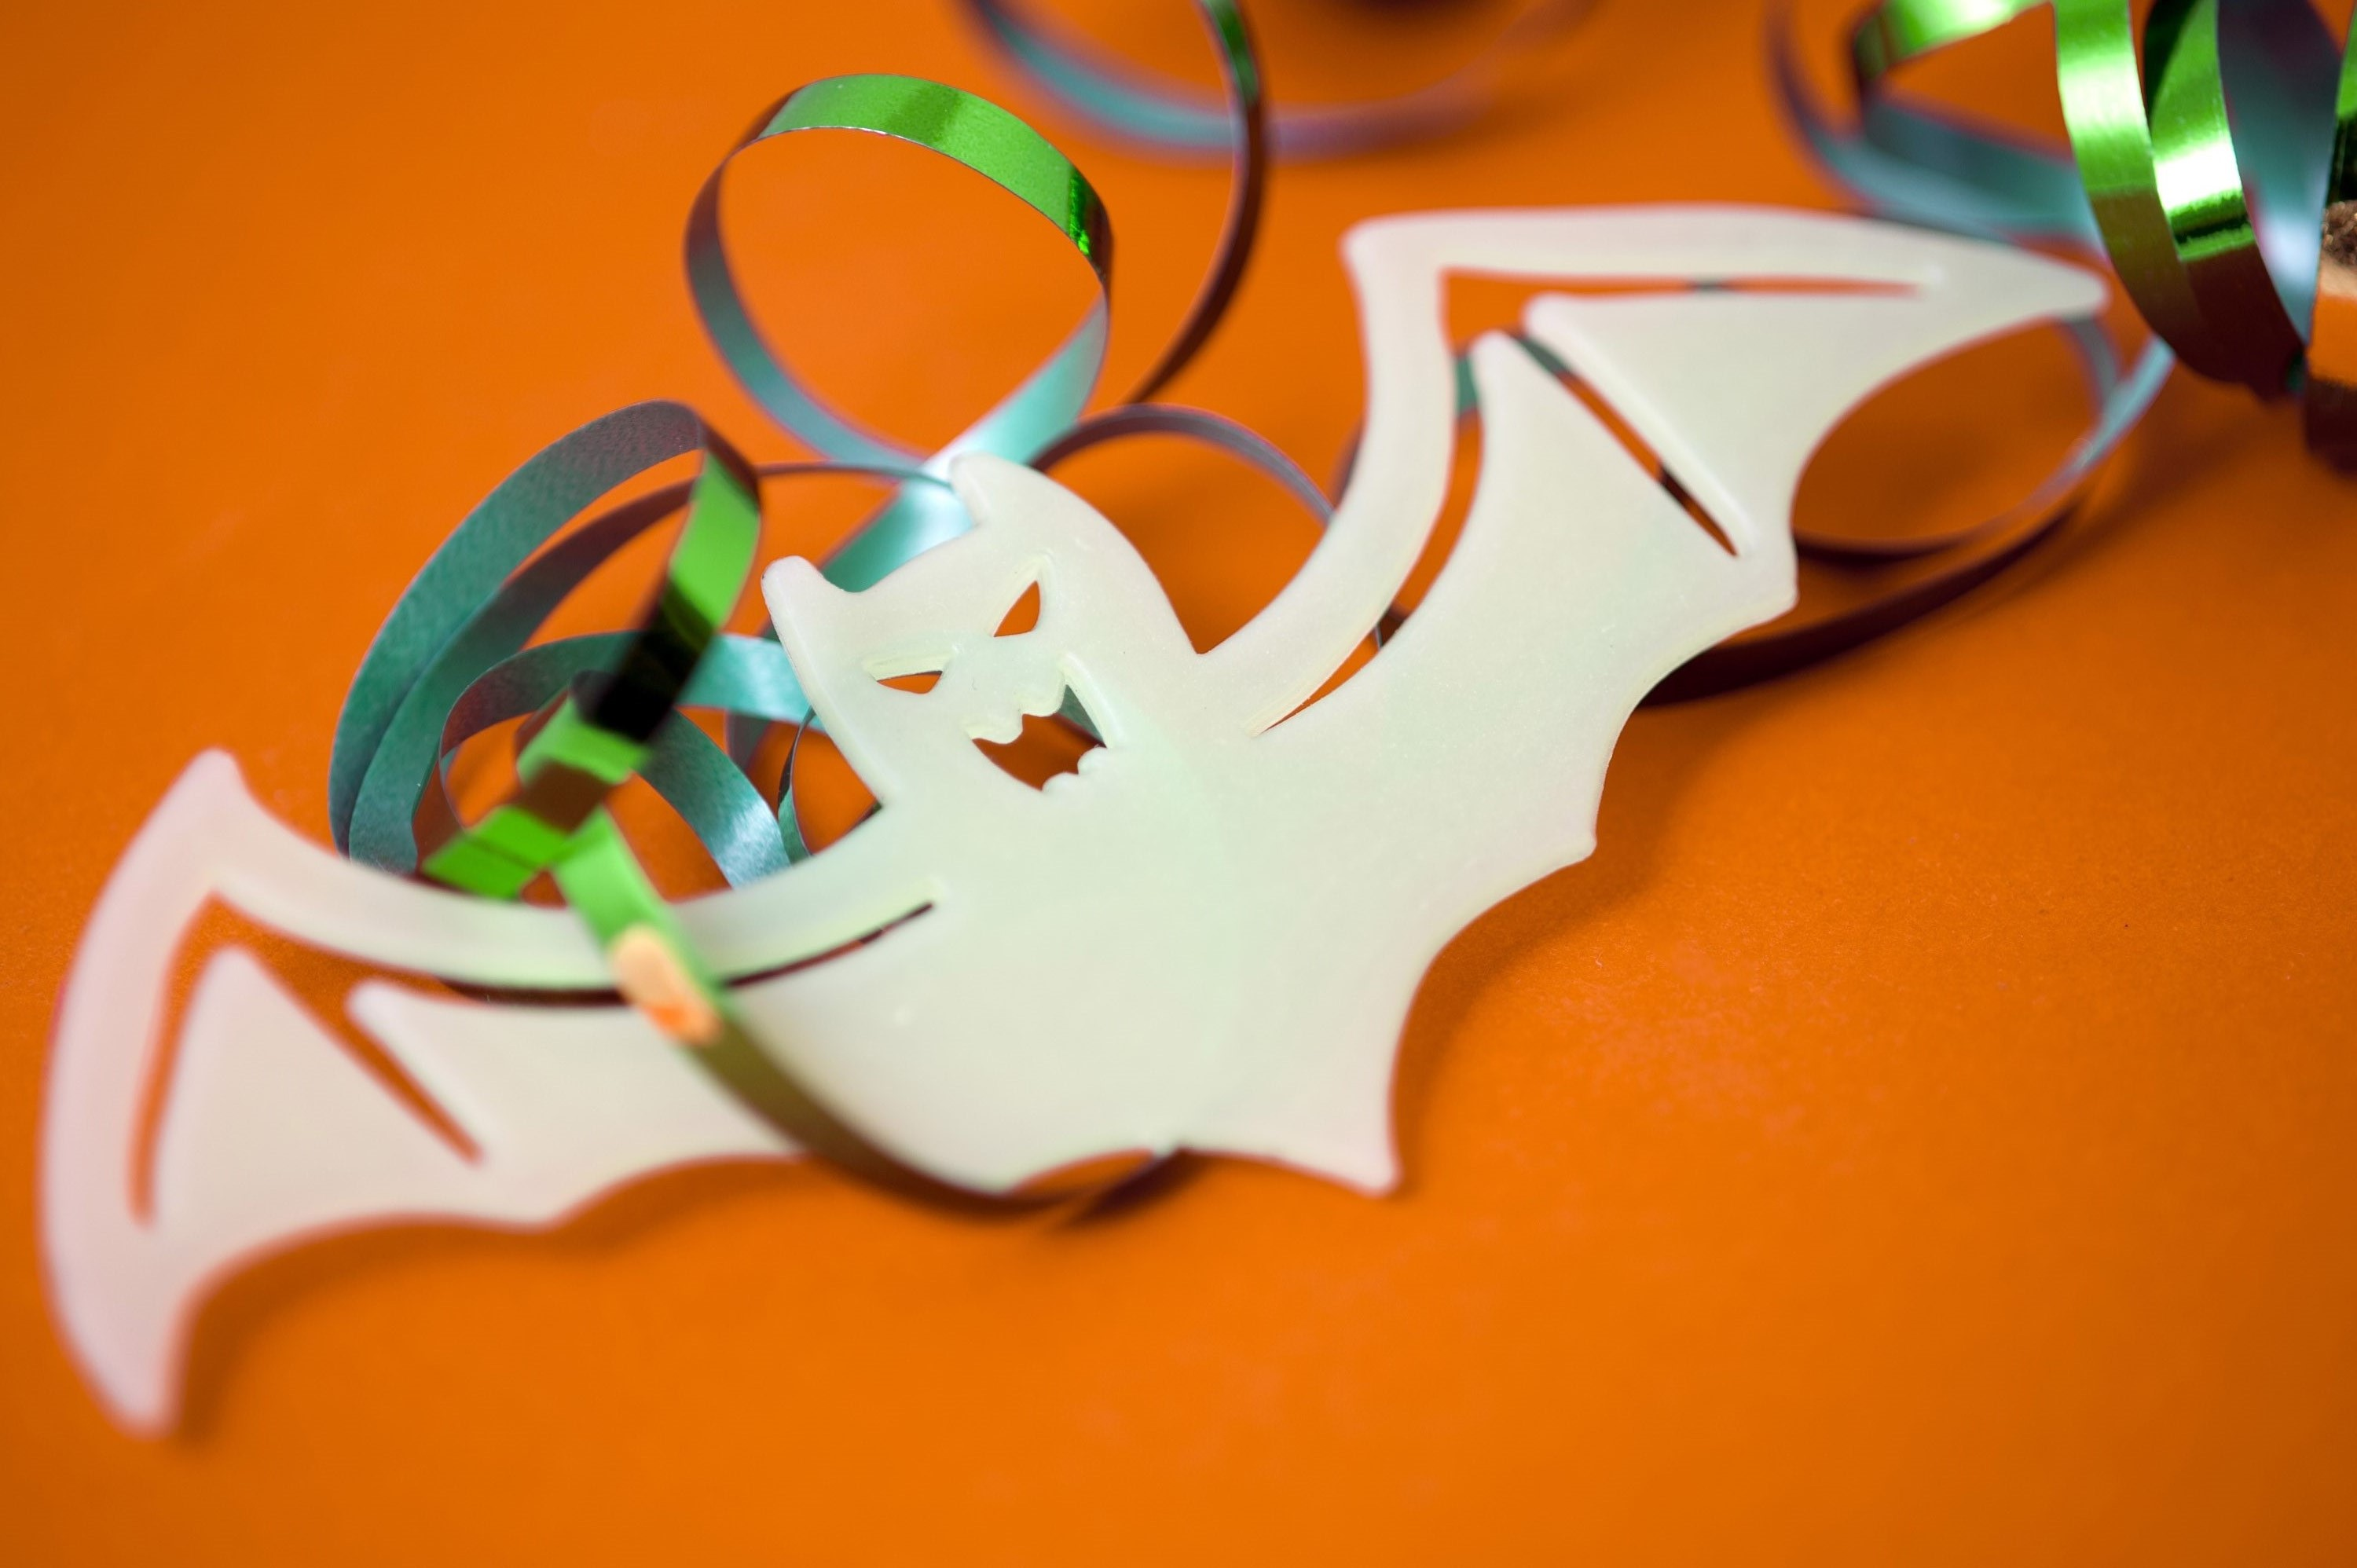 Halloween bat decoration with party streamers on a festive orange background